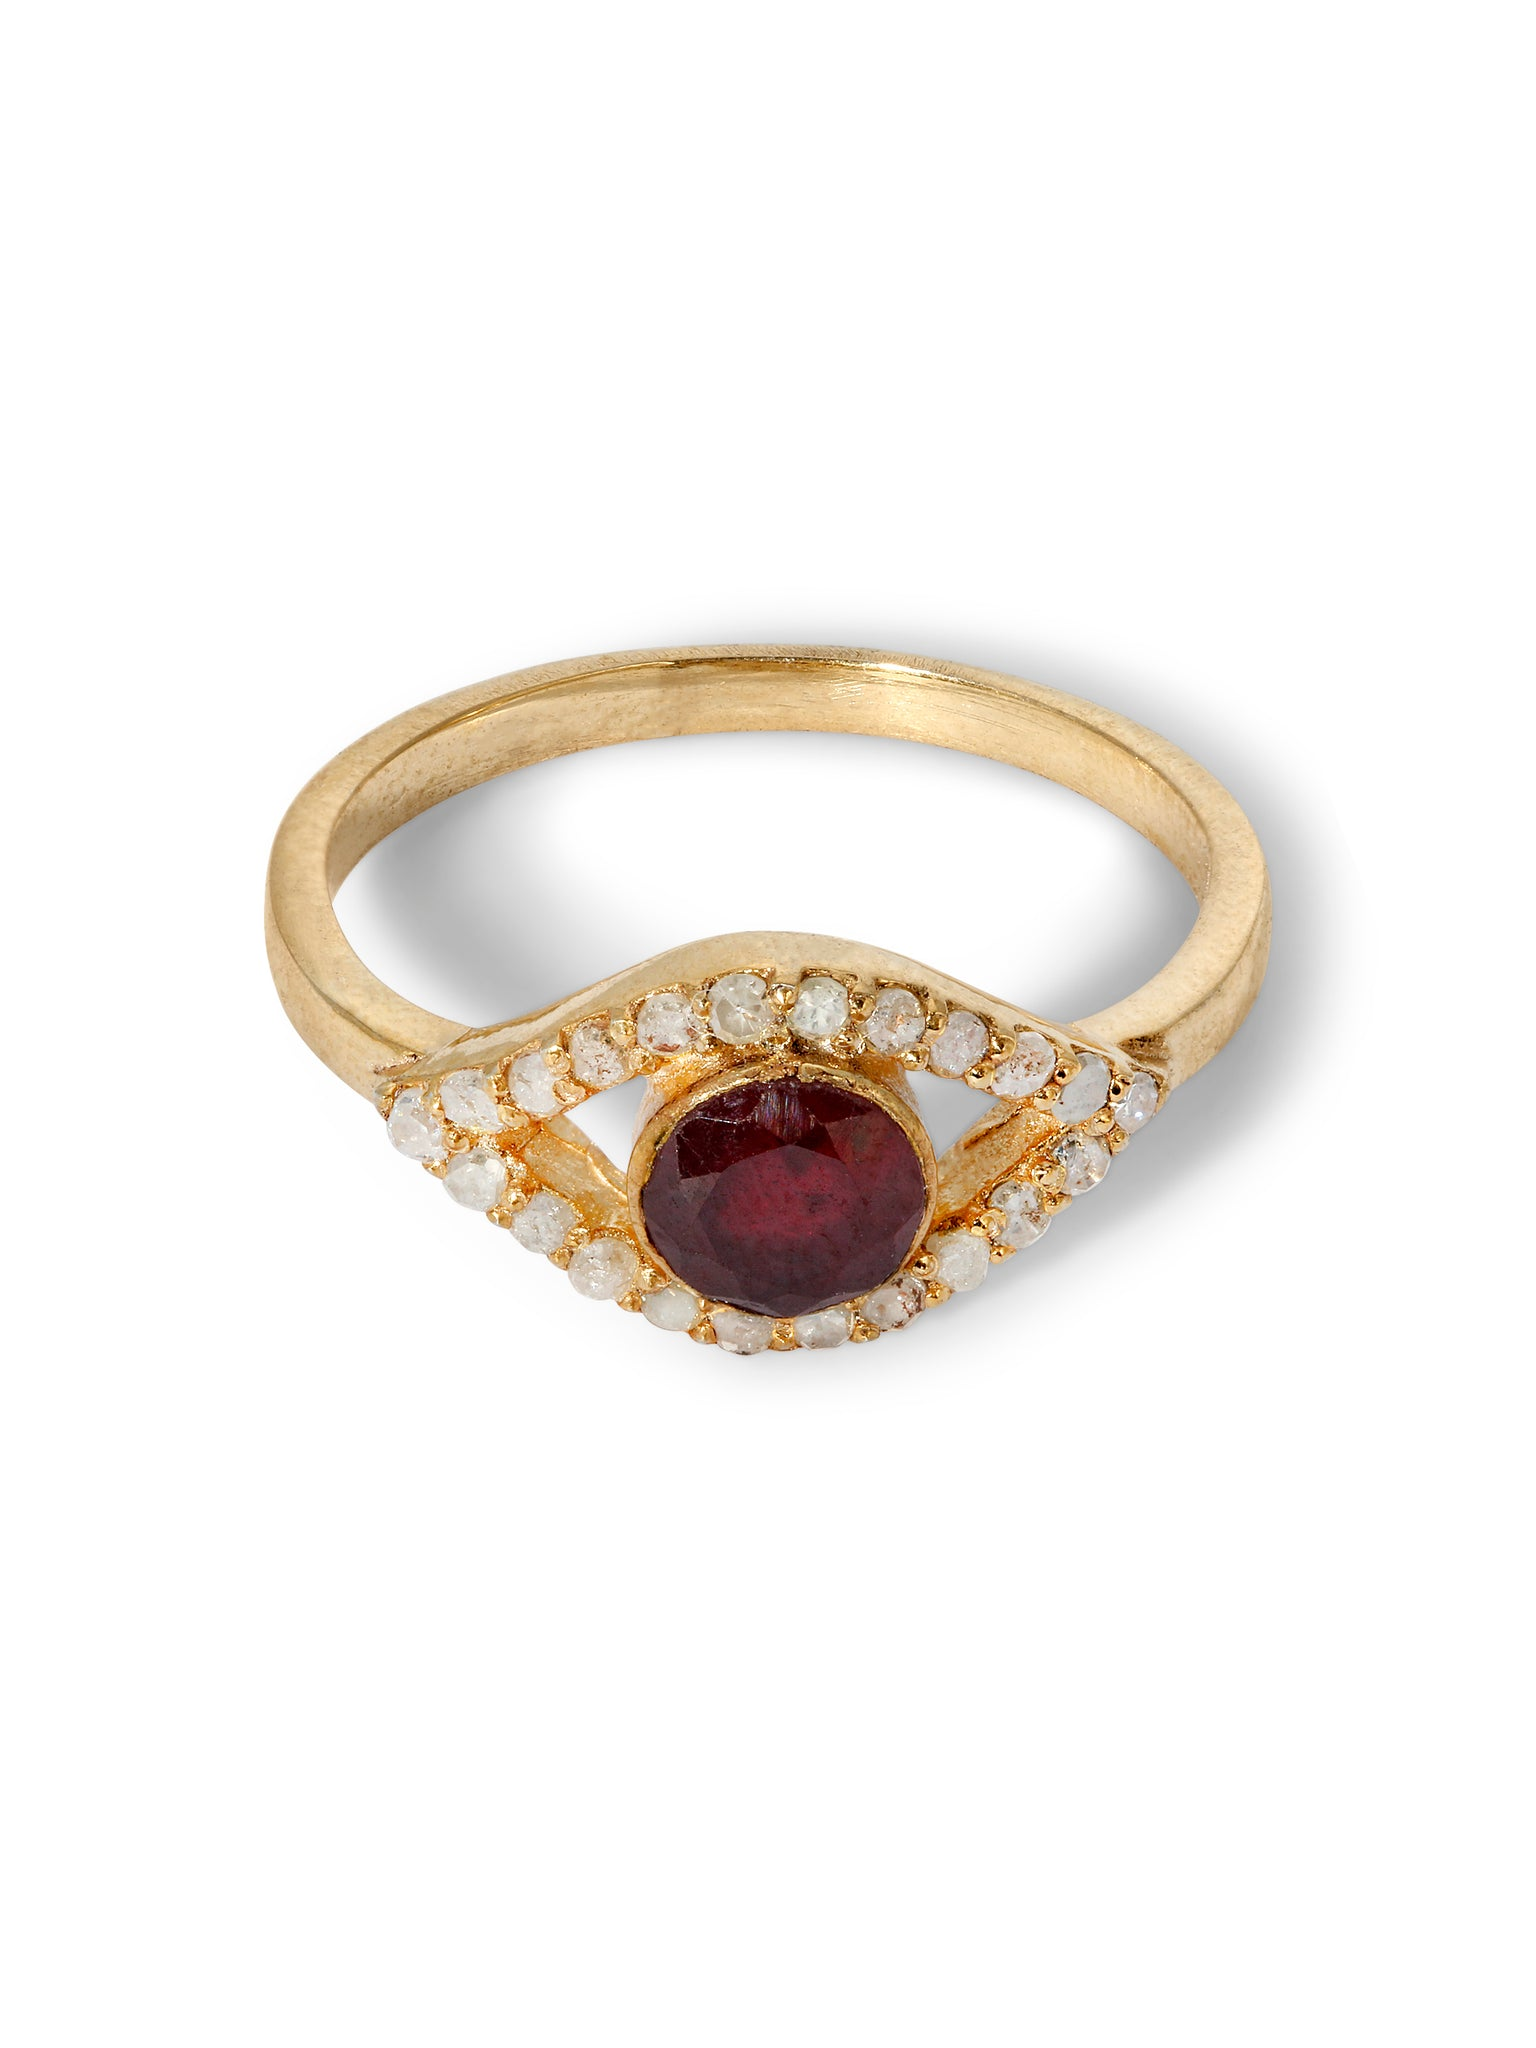 The Diamond Iris Ring - Ruby